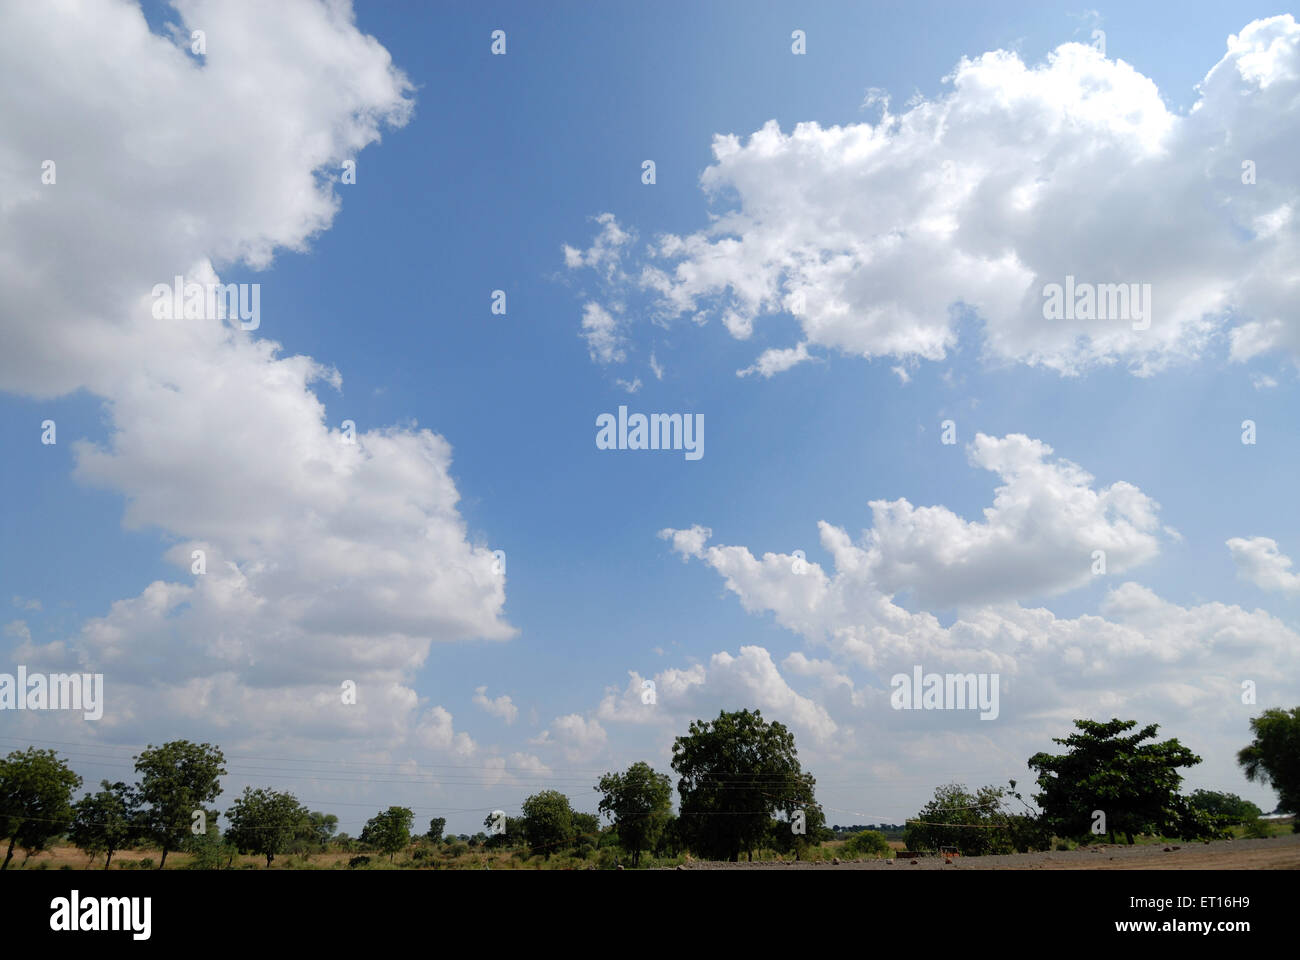 Summer white clouds on blue sky and trees landscape - Stock Image